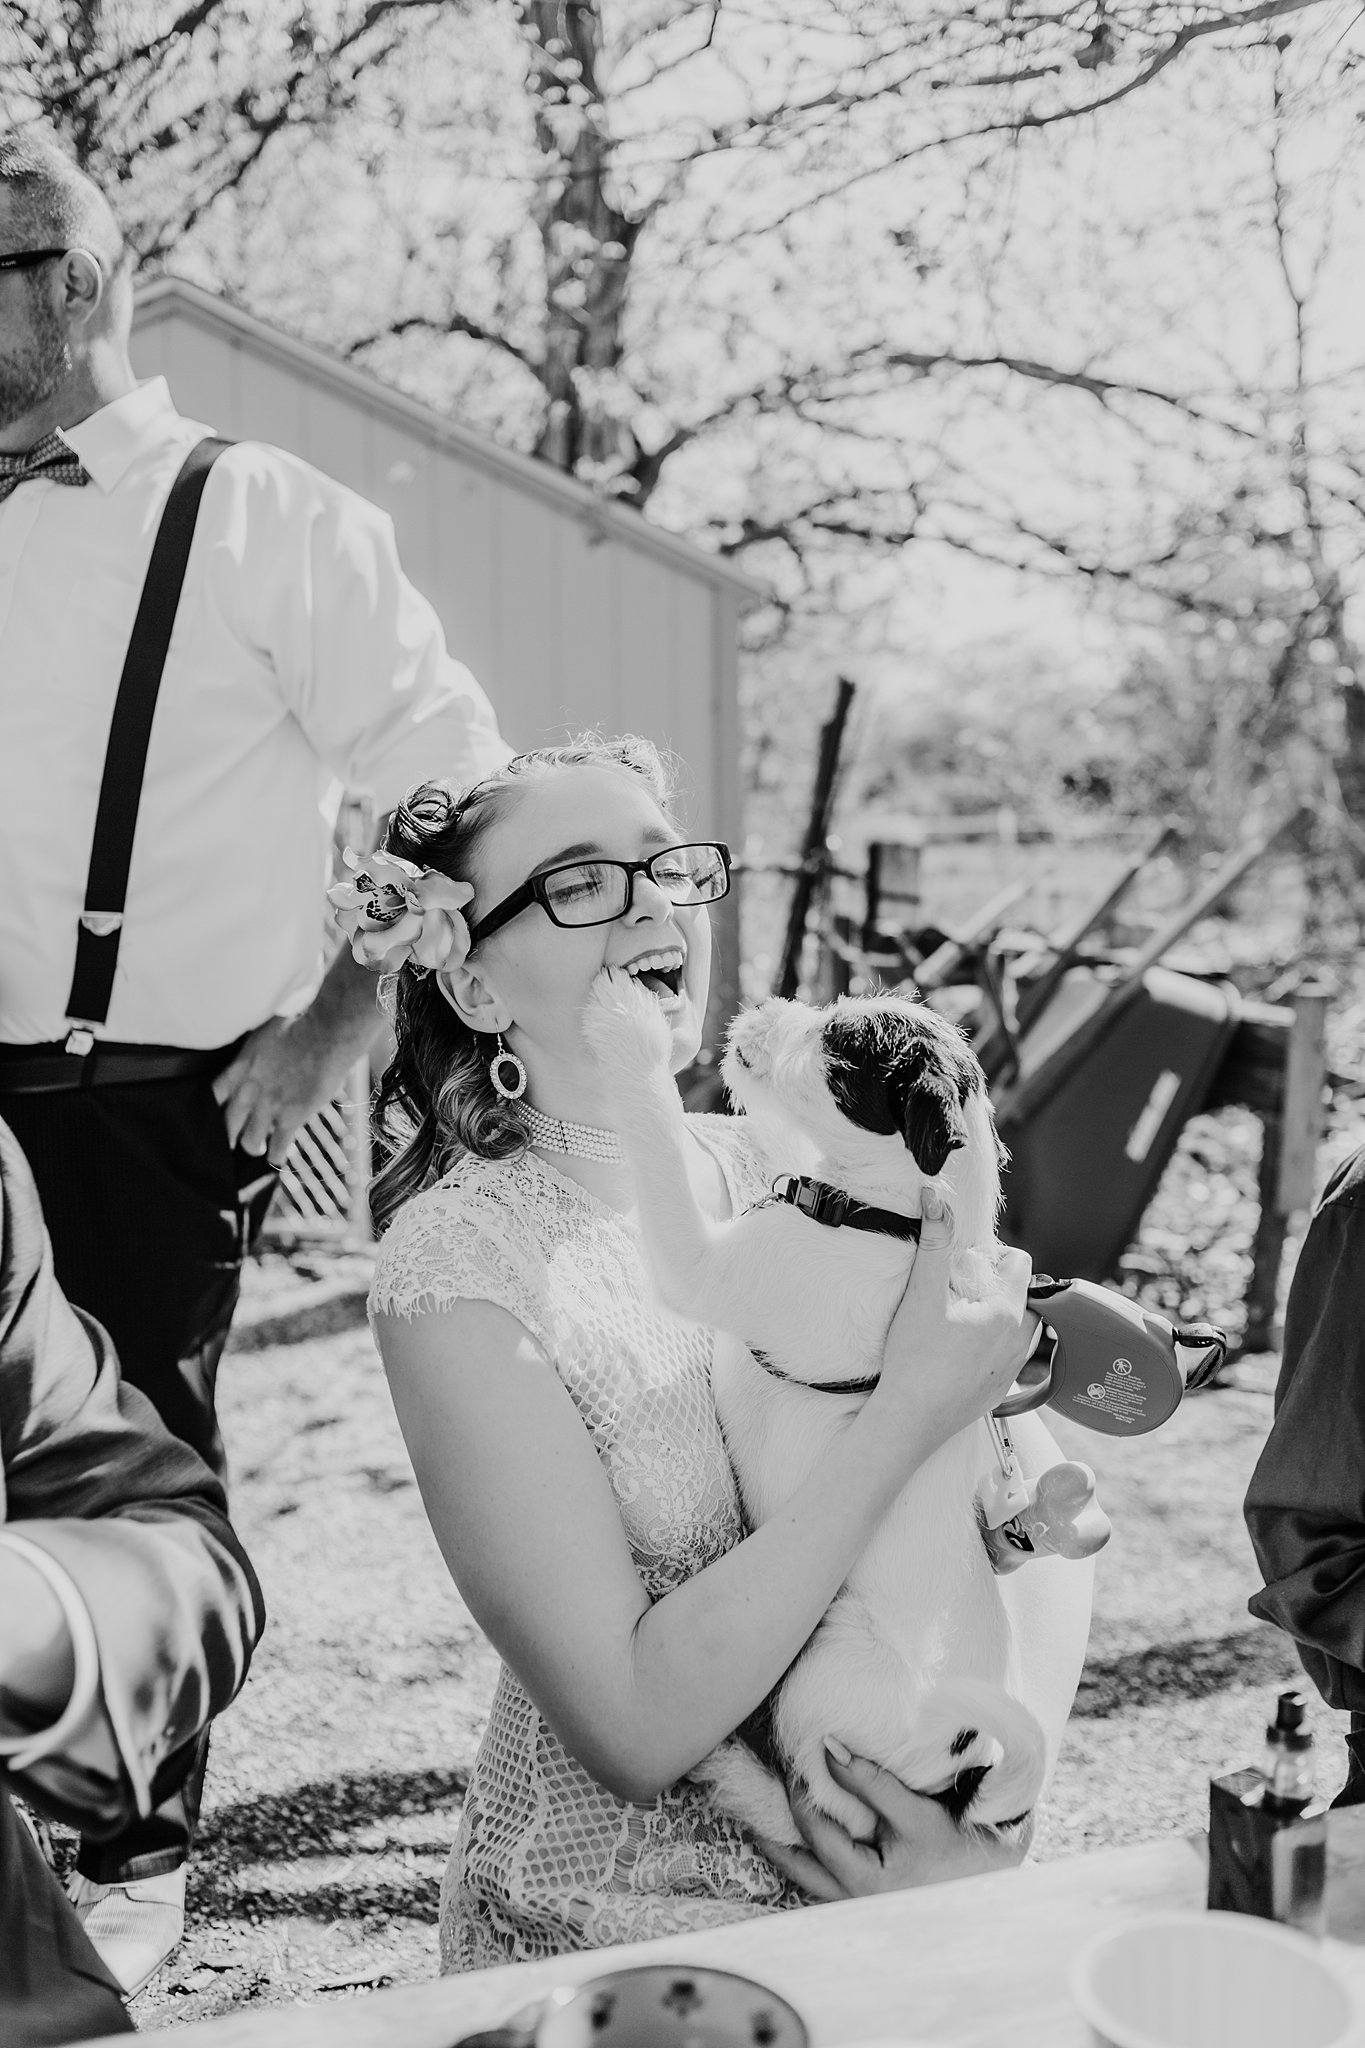 The bride laughs while holding a puppy.